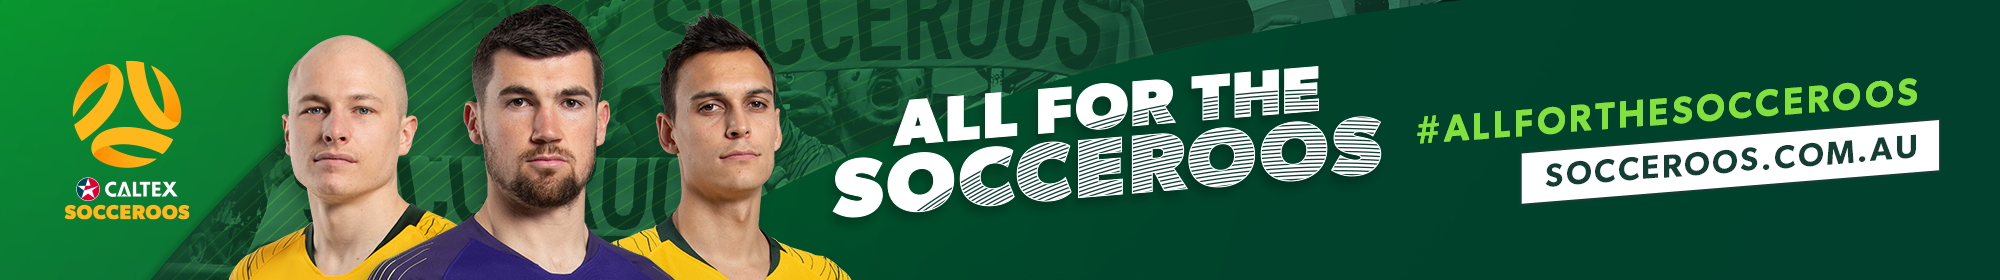 All-For-The-Socceroos